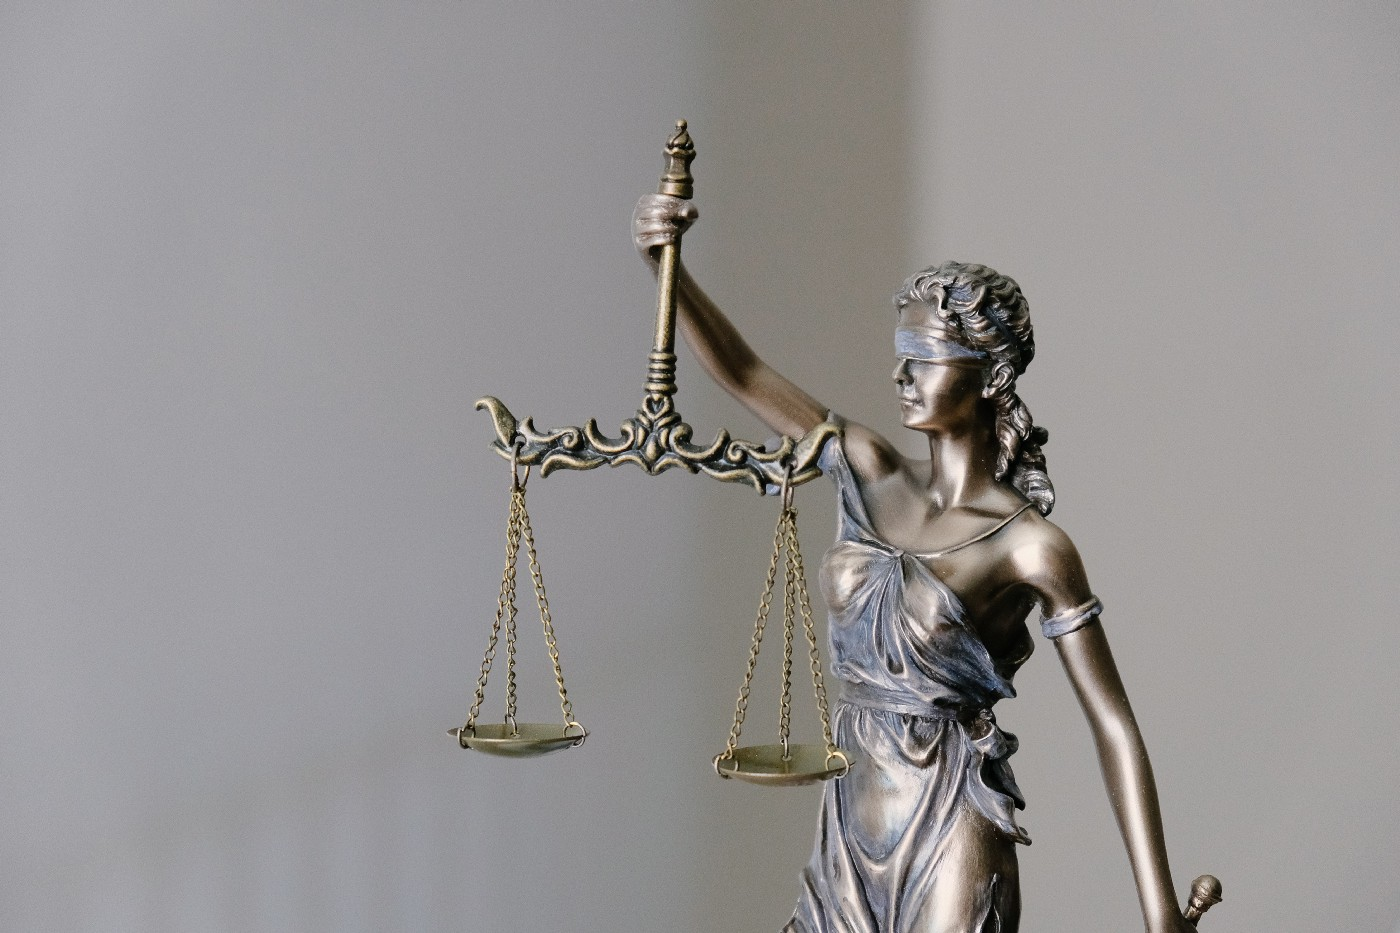 sculpture of Lady Justice blindfolded and holding balance scales